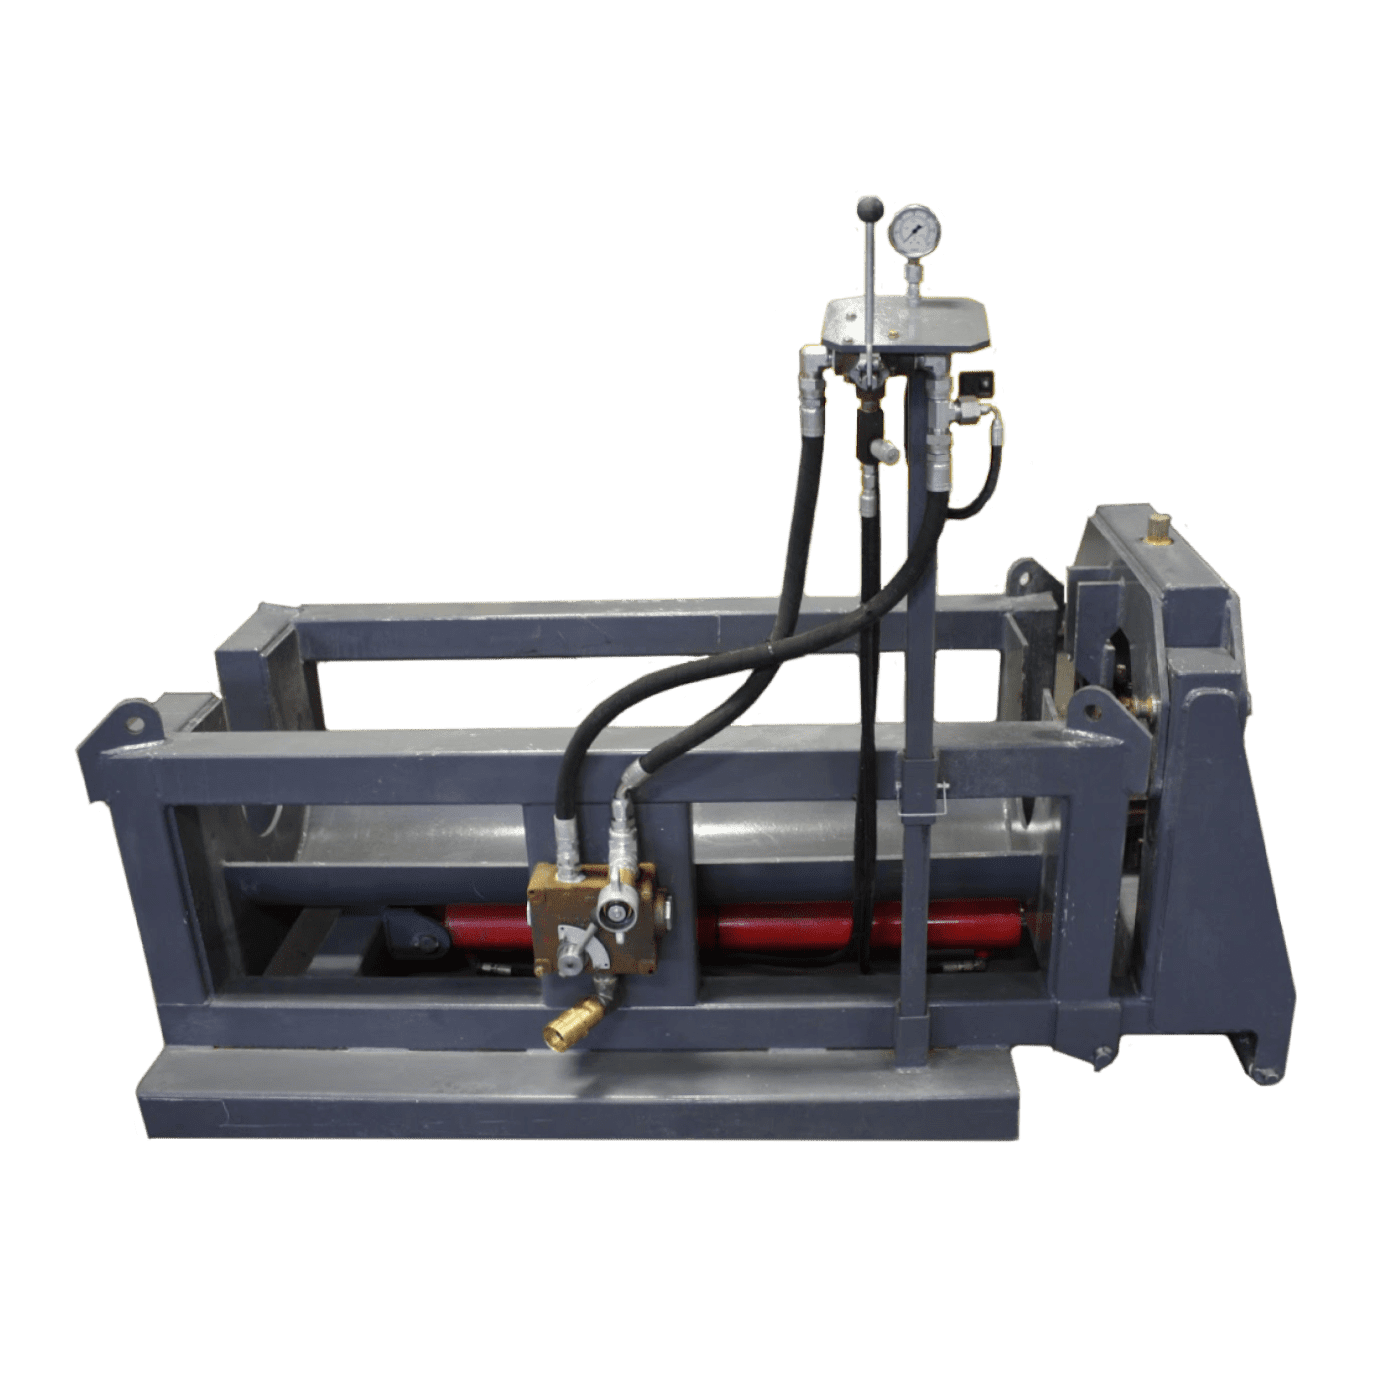 RCD Press to install and remove a Rotating Control Head